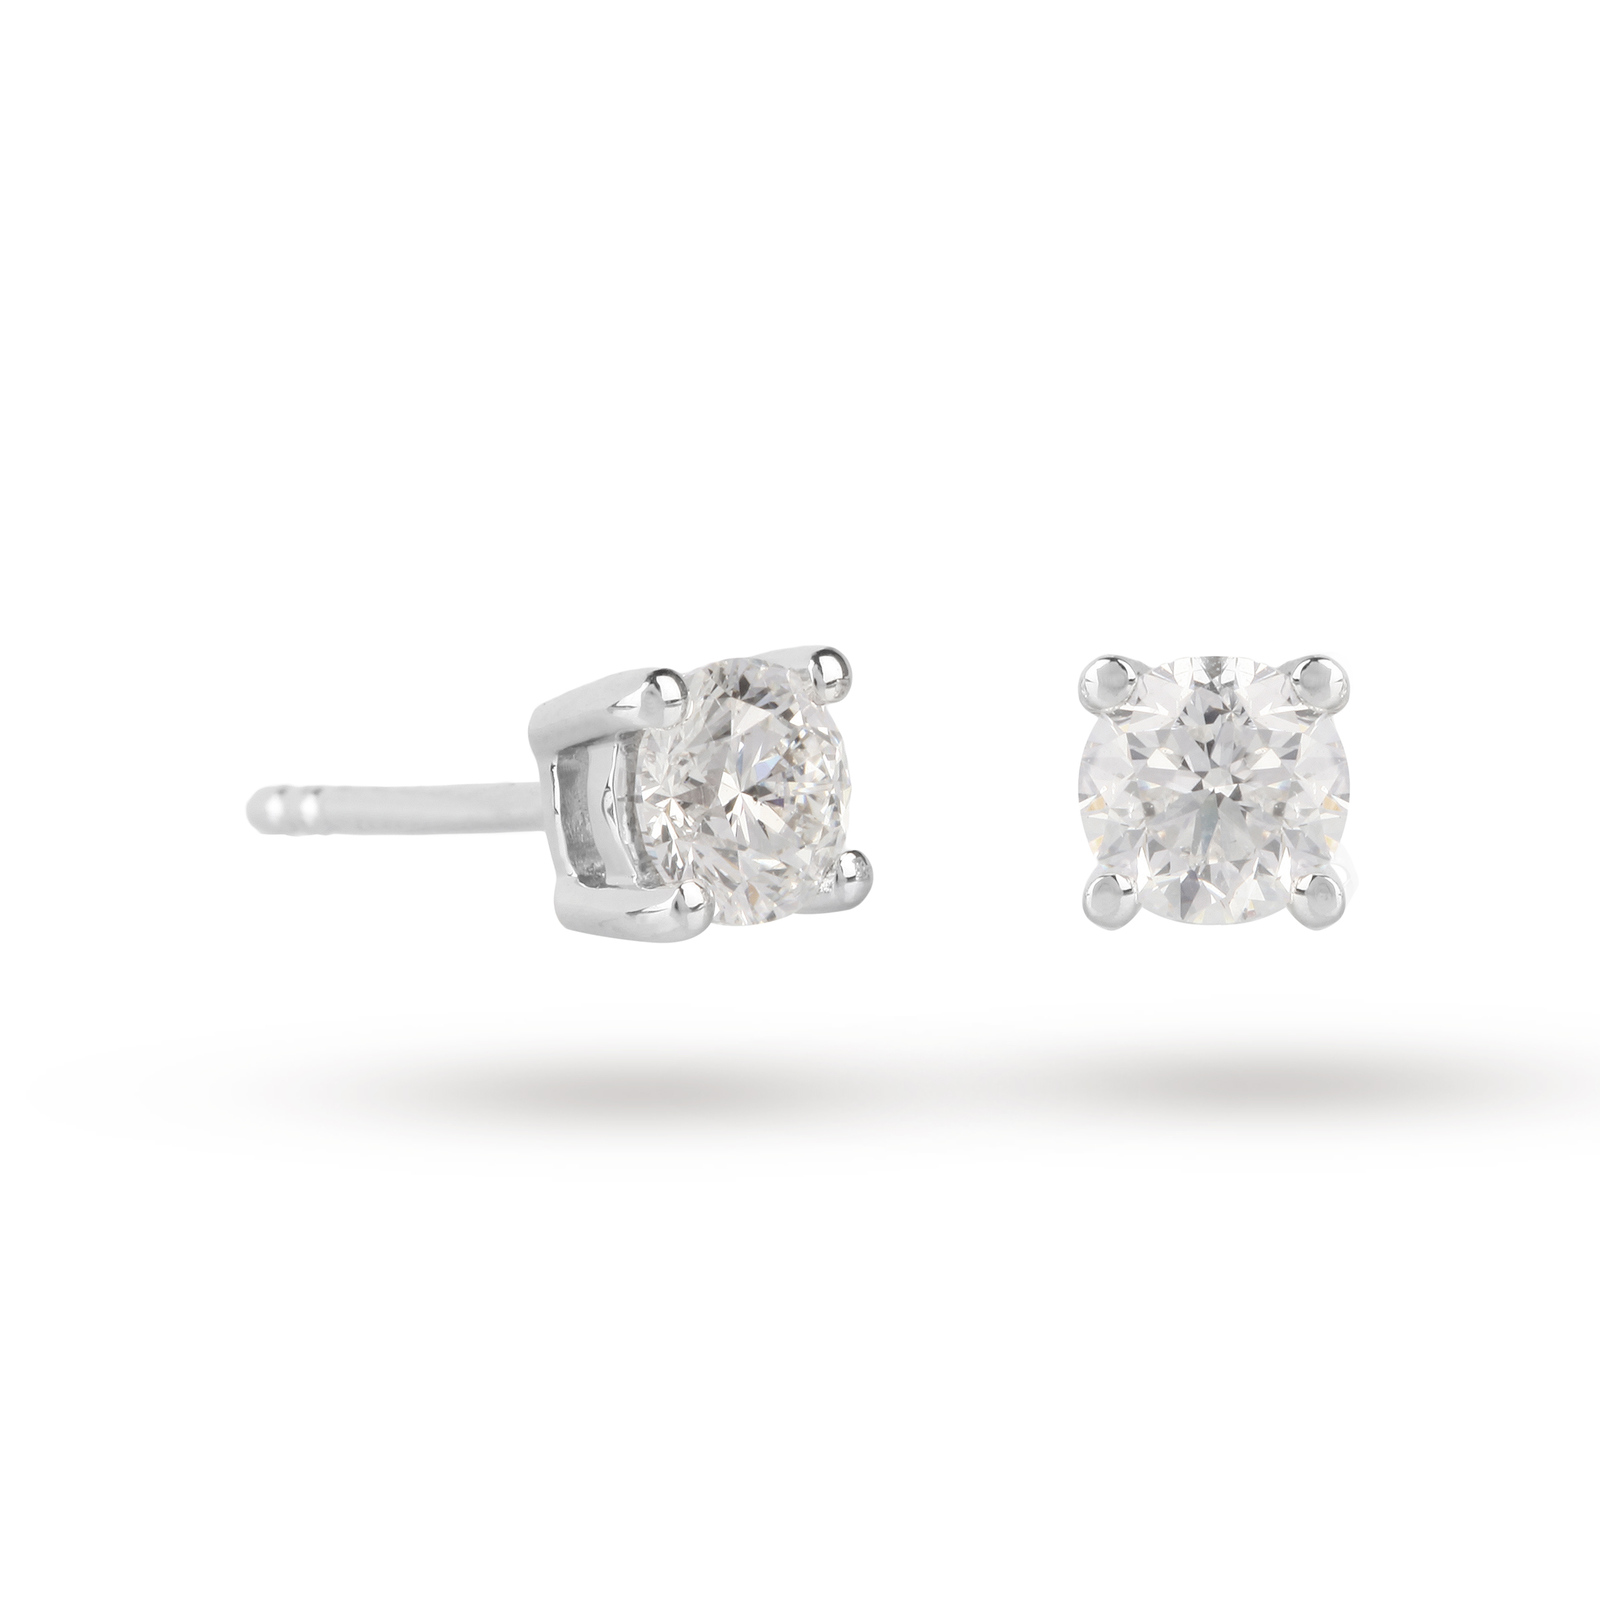 18ct White Gold 1.00ct Brilliant Cut D Colour Diamond Earrings